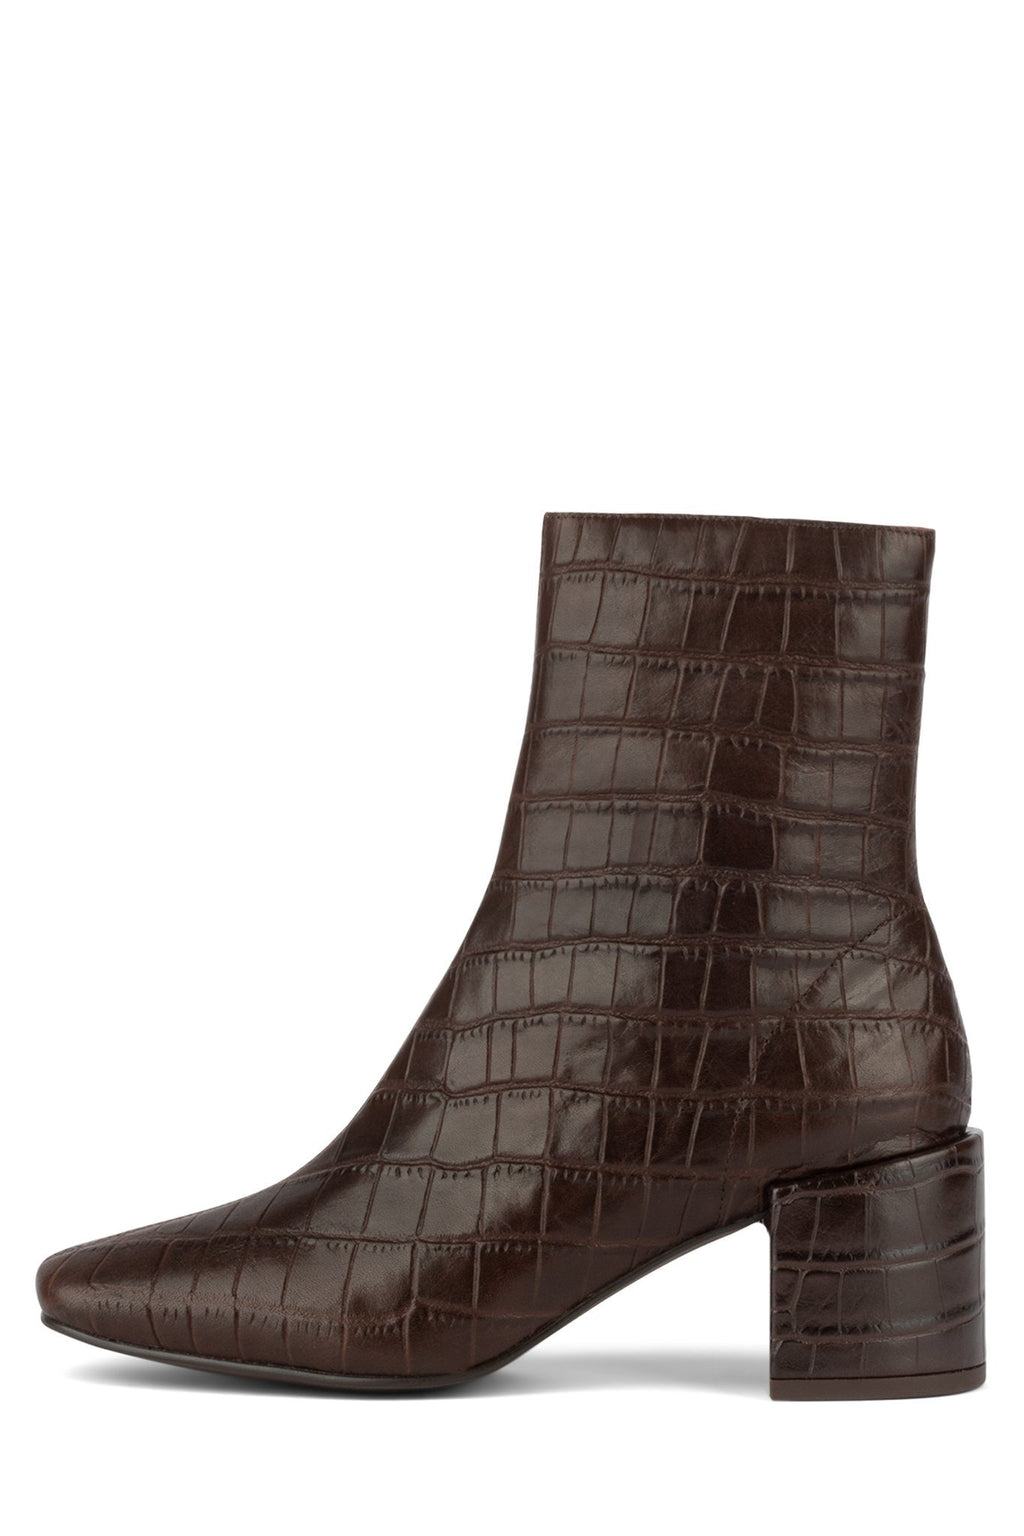 GODARD-NB Bootie YYH Brown Croco 6